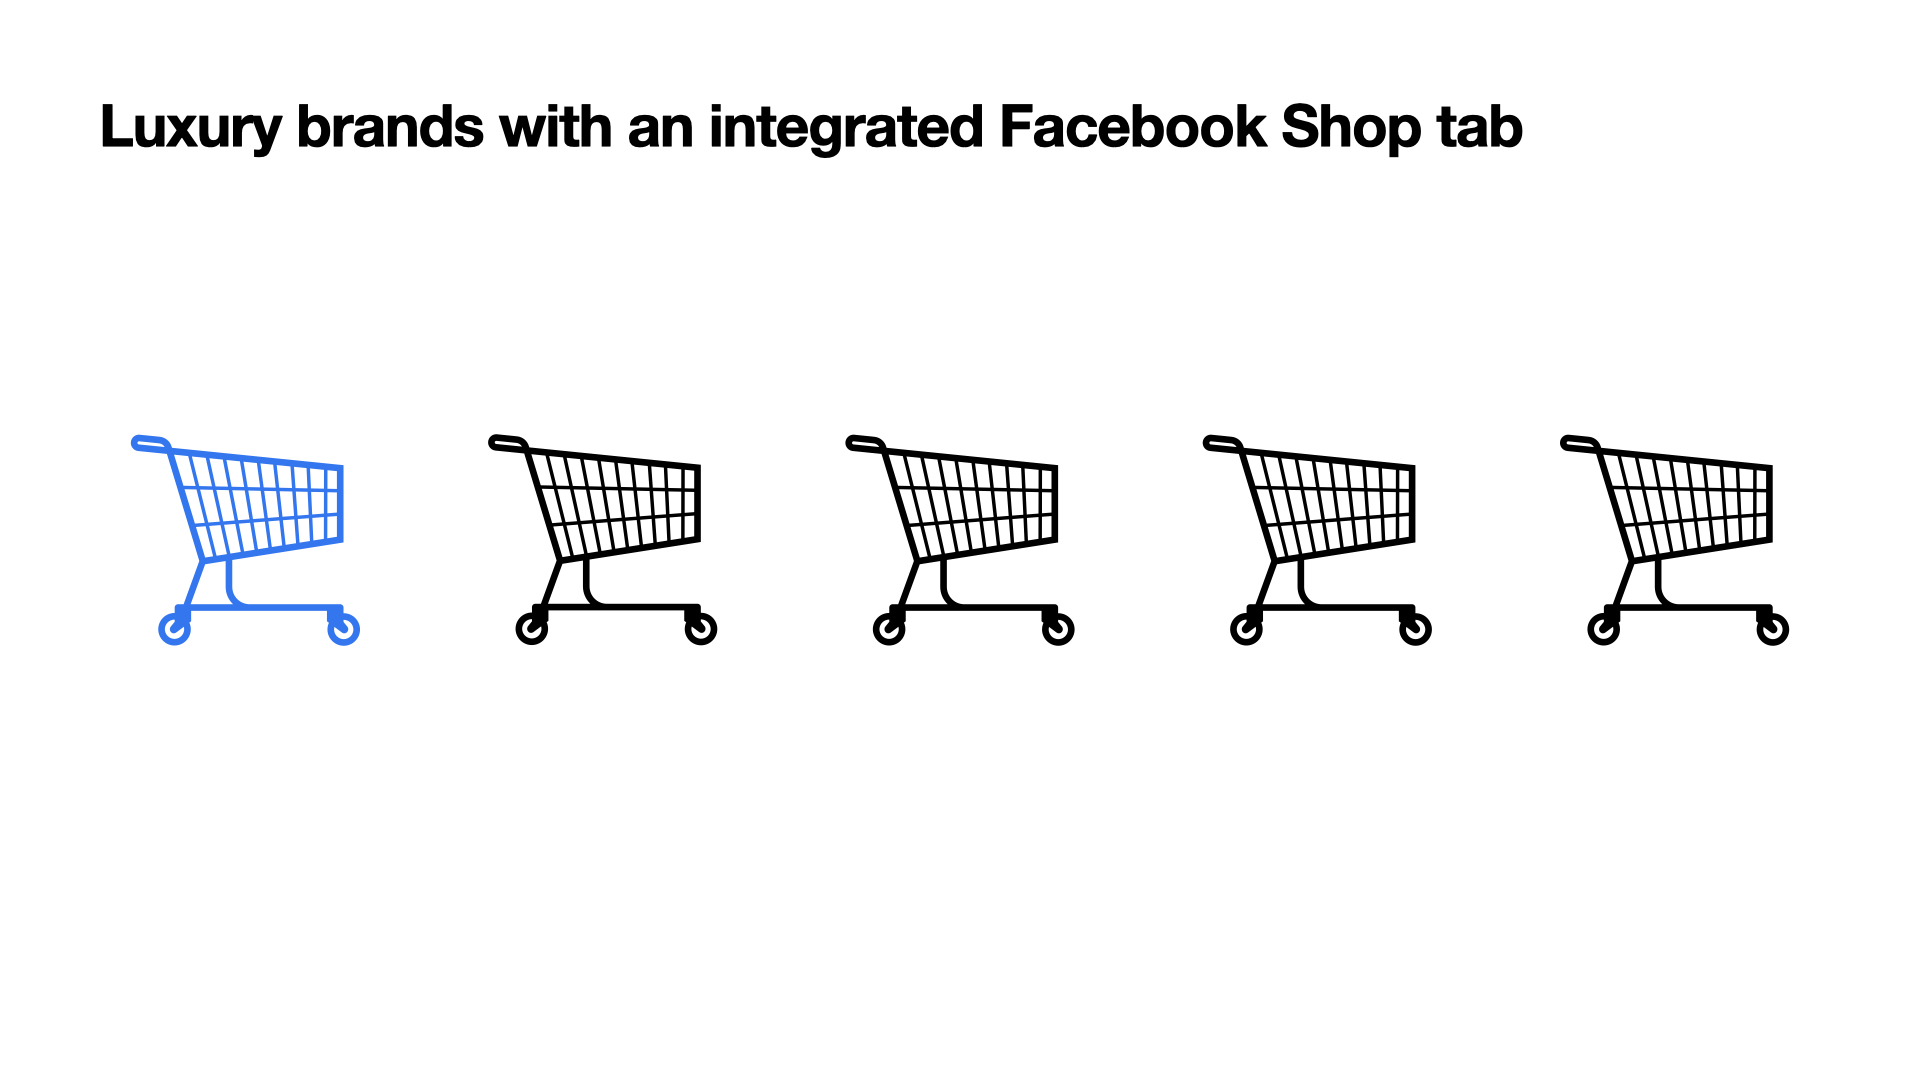 A luxury digital marketing agency's take on customer experience in 2021 (CX): Only a fifth of luxury brands have an integrated Facebook Shop tab on their official page.